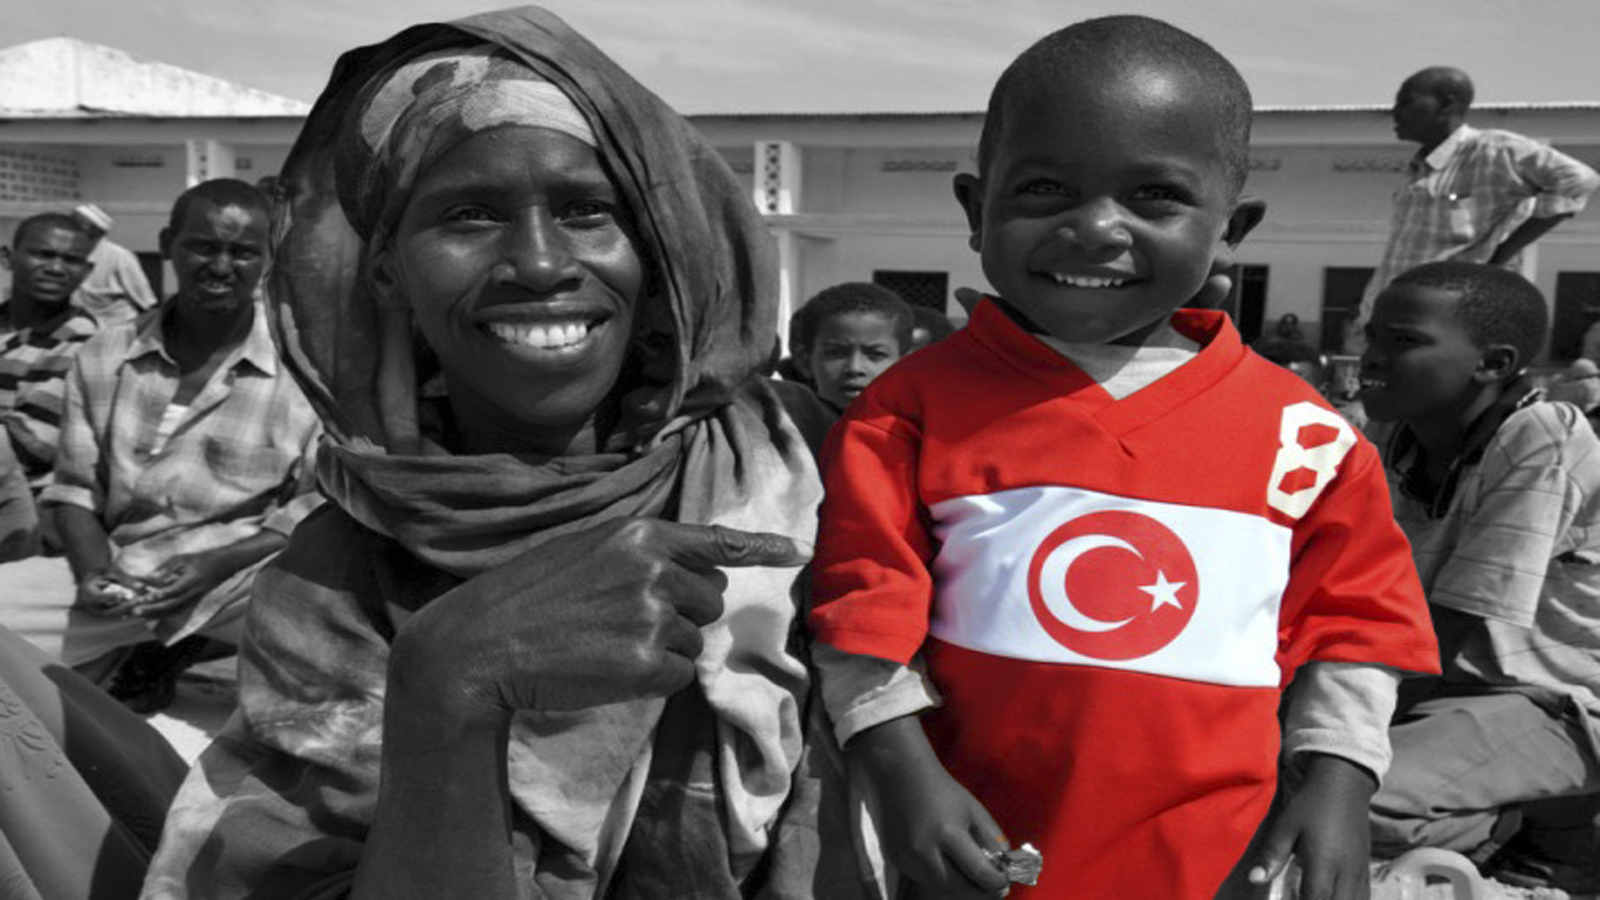 Turkish Foreign Policy in Somalia: Humanitarian or Strategic?